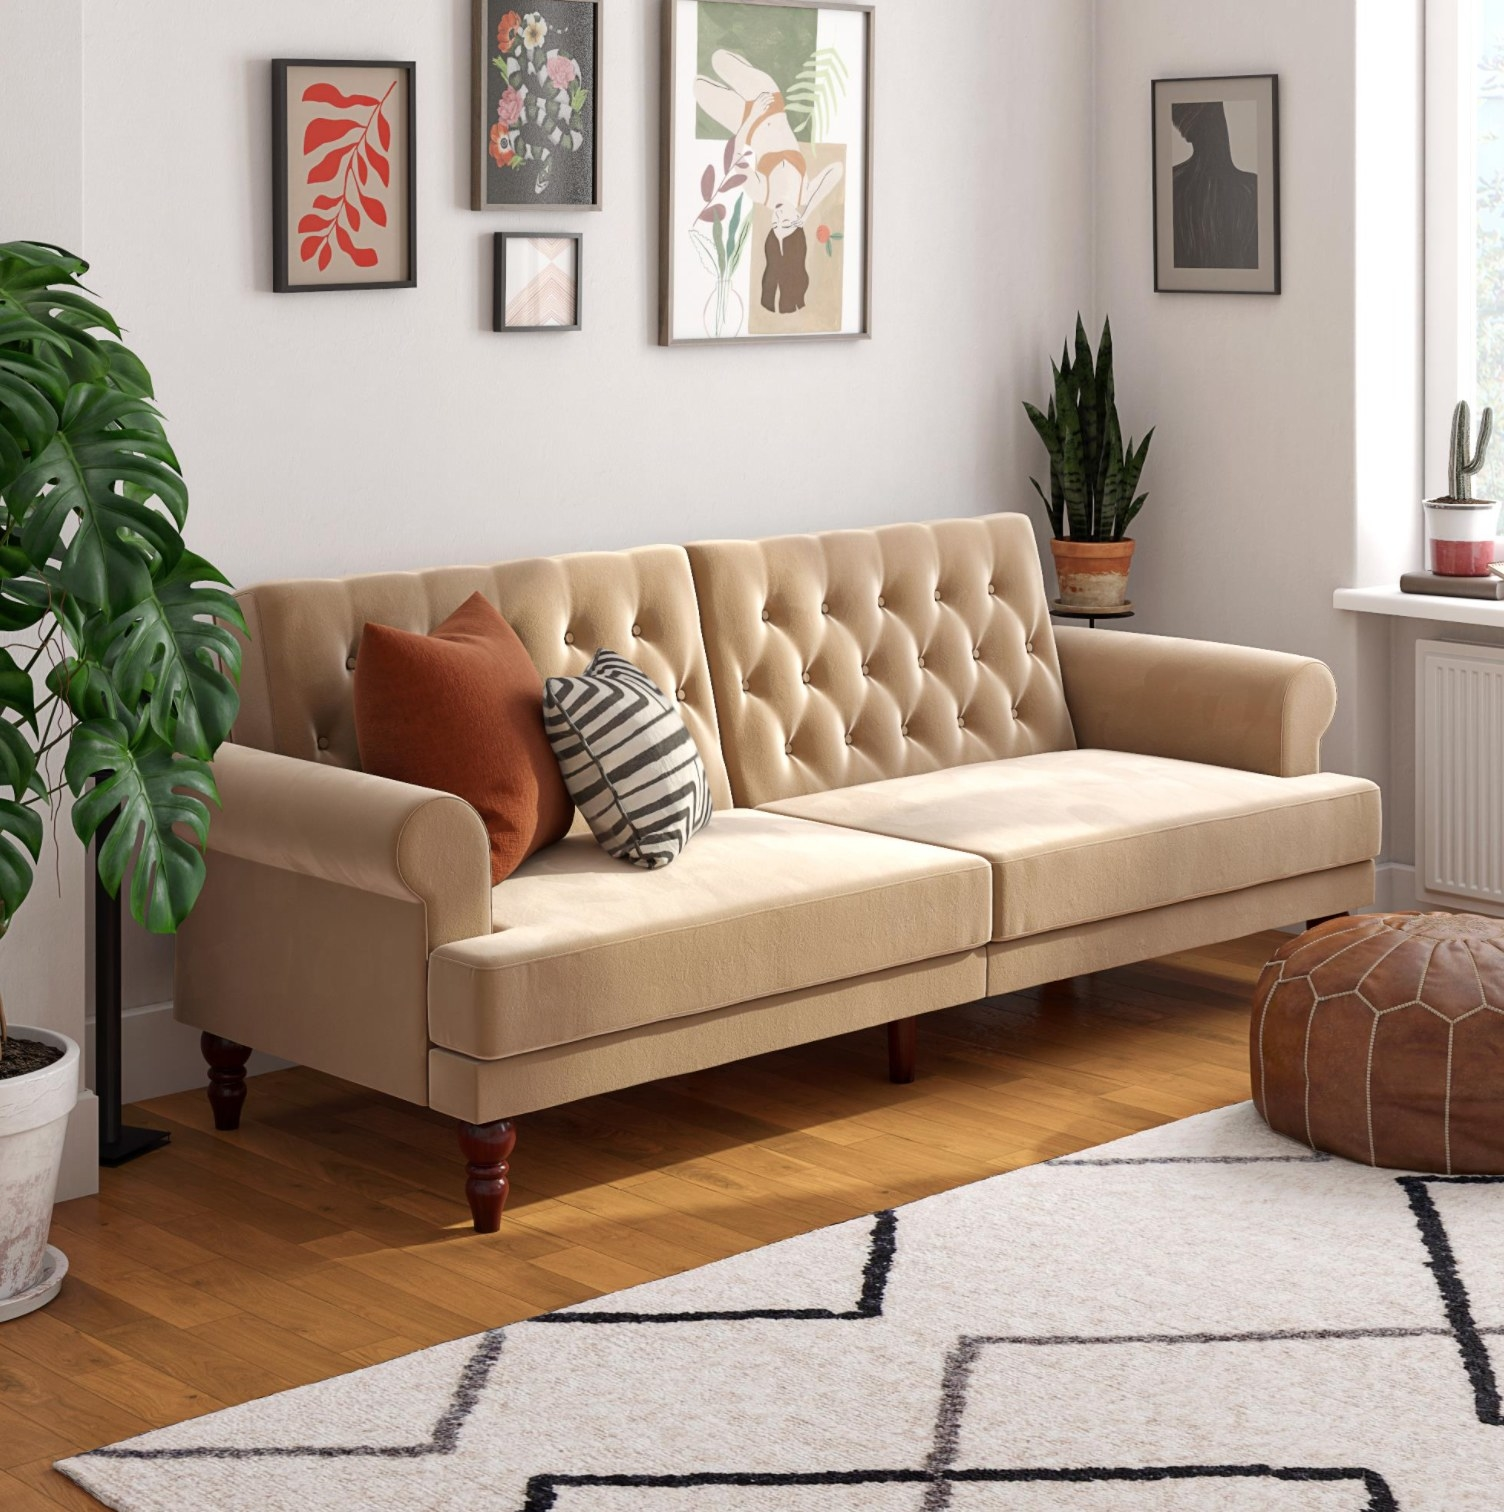 The couch in ivory